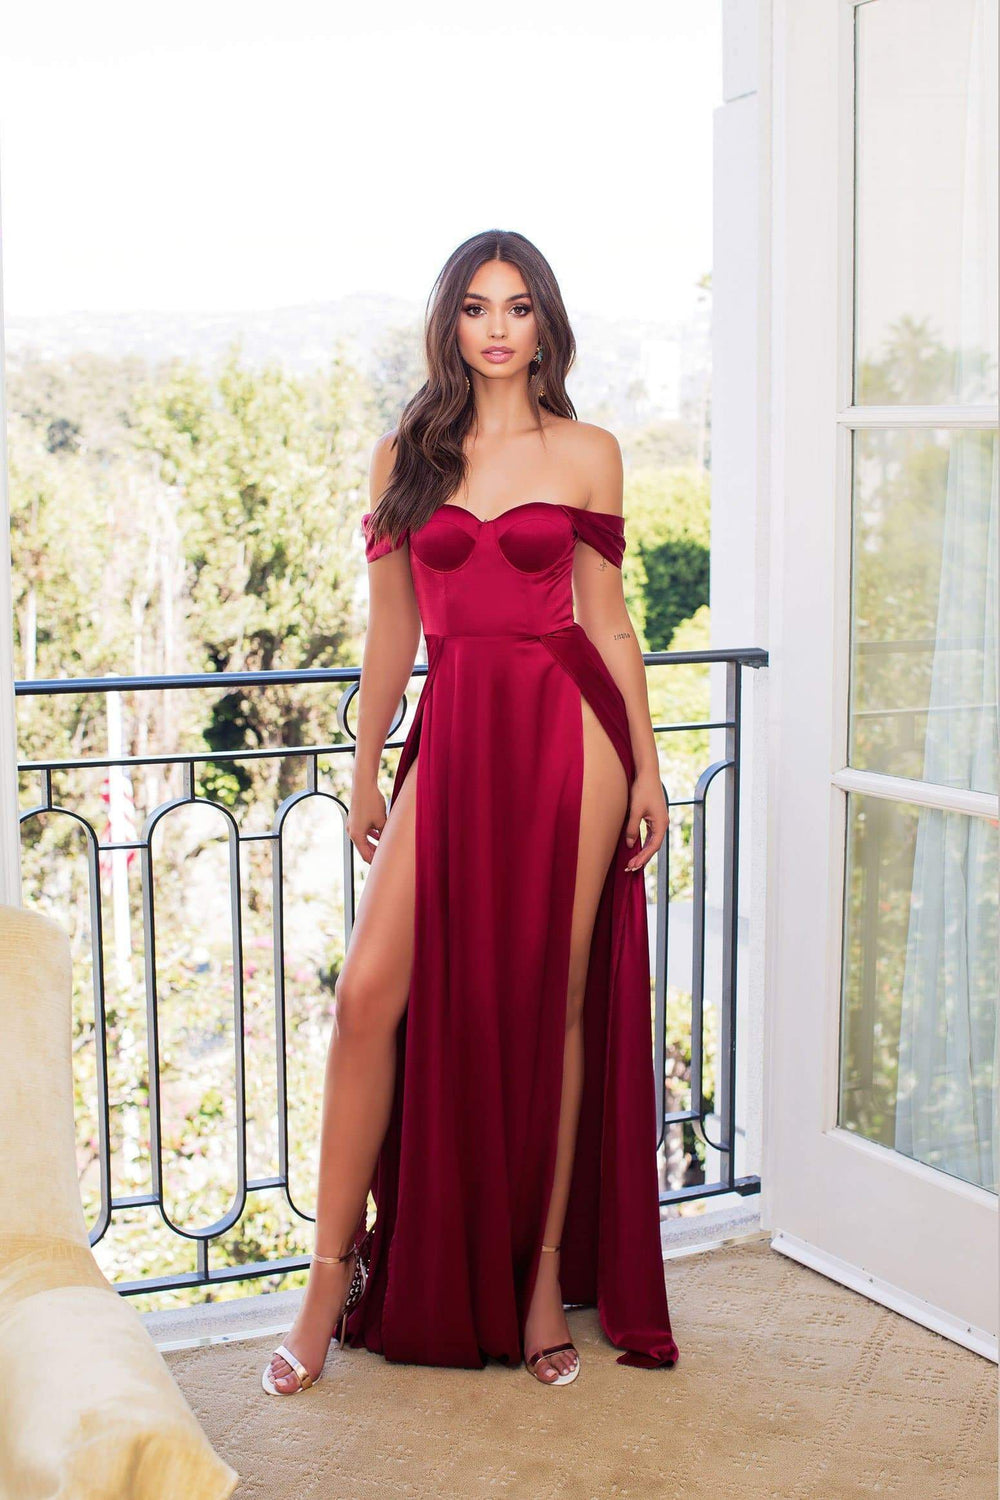 Dominikia - Deep Red Satin Gown with Off-Shoulder Drapes & Side Slits